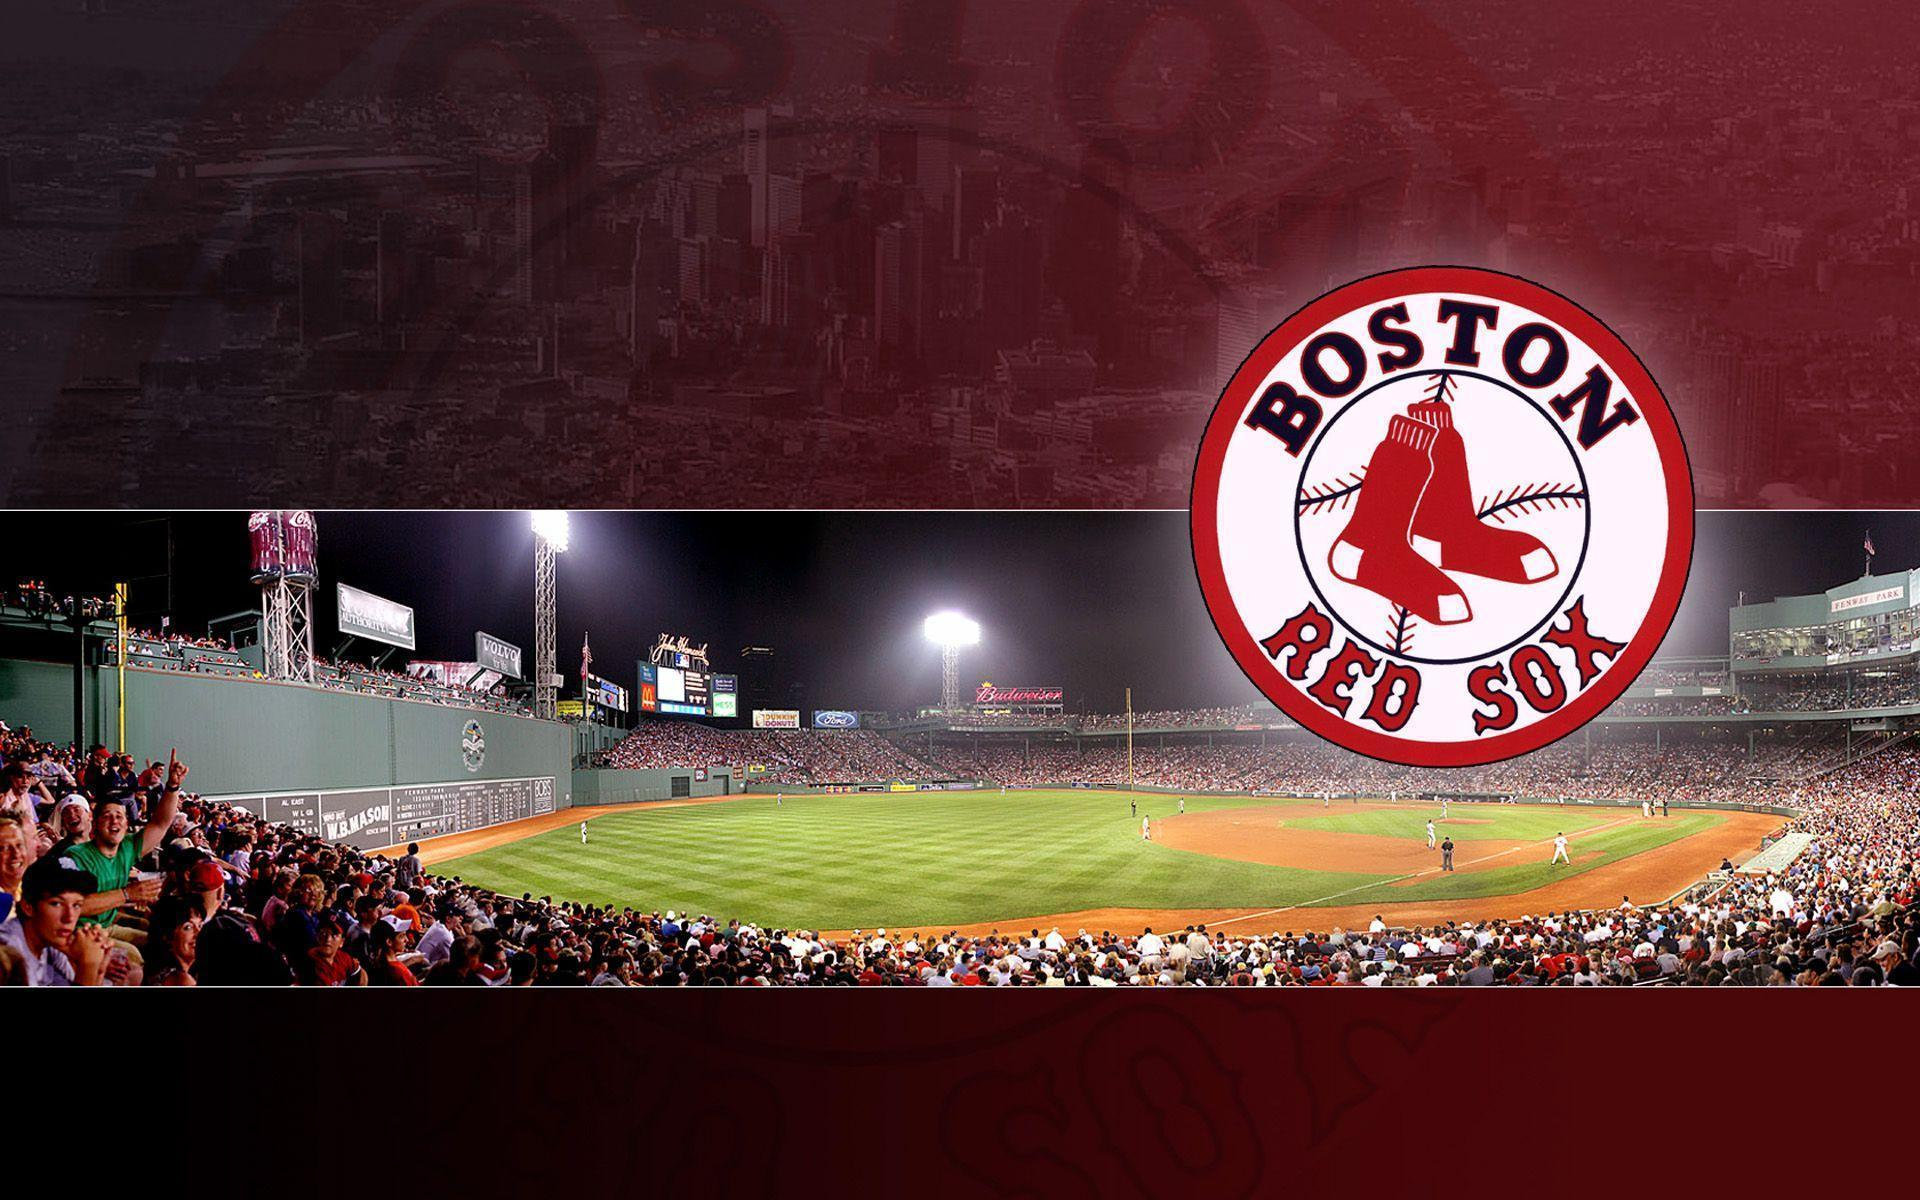 Boston Red Sox Backgrounds Free Download